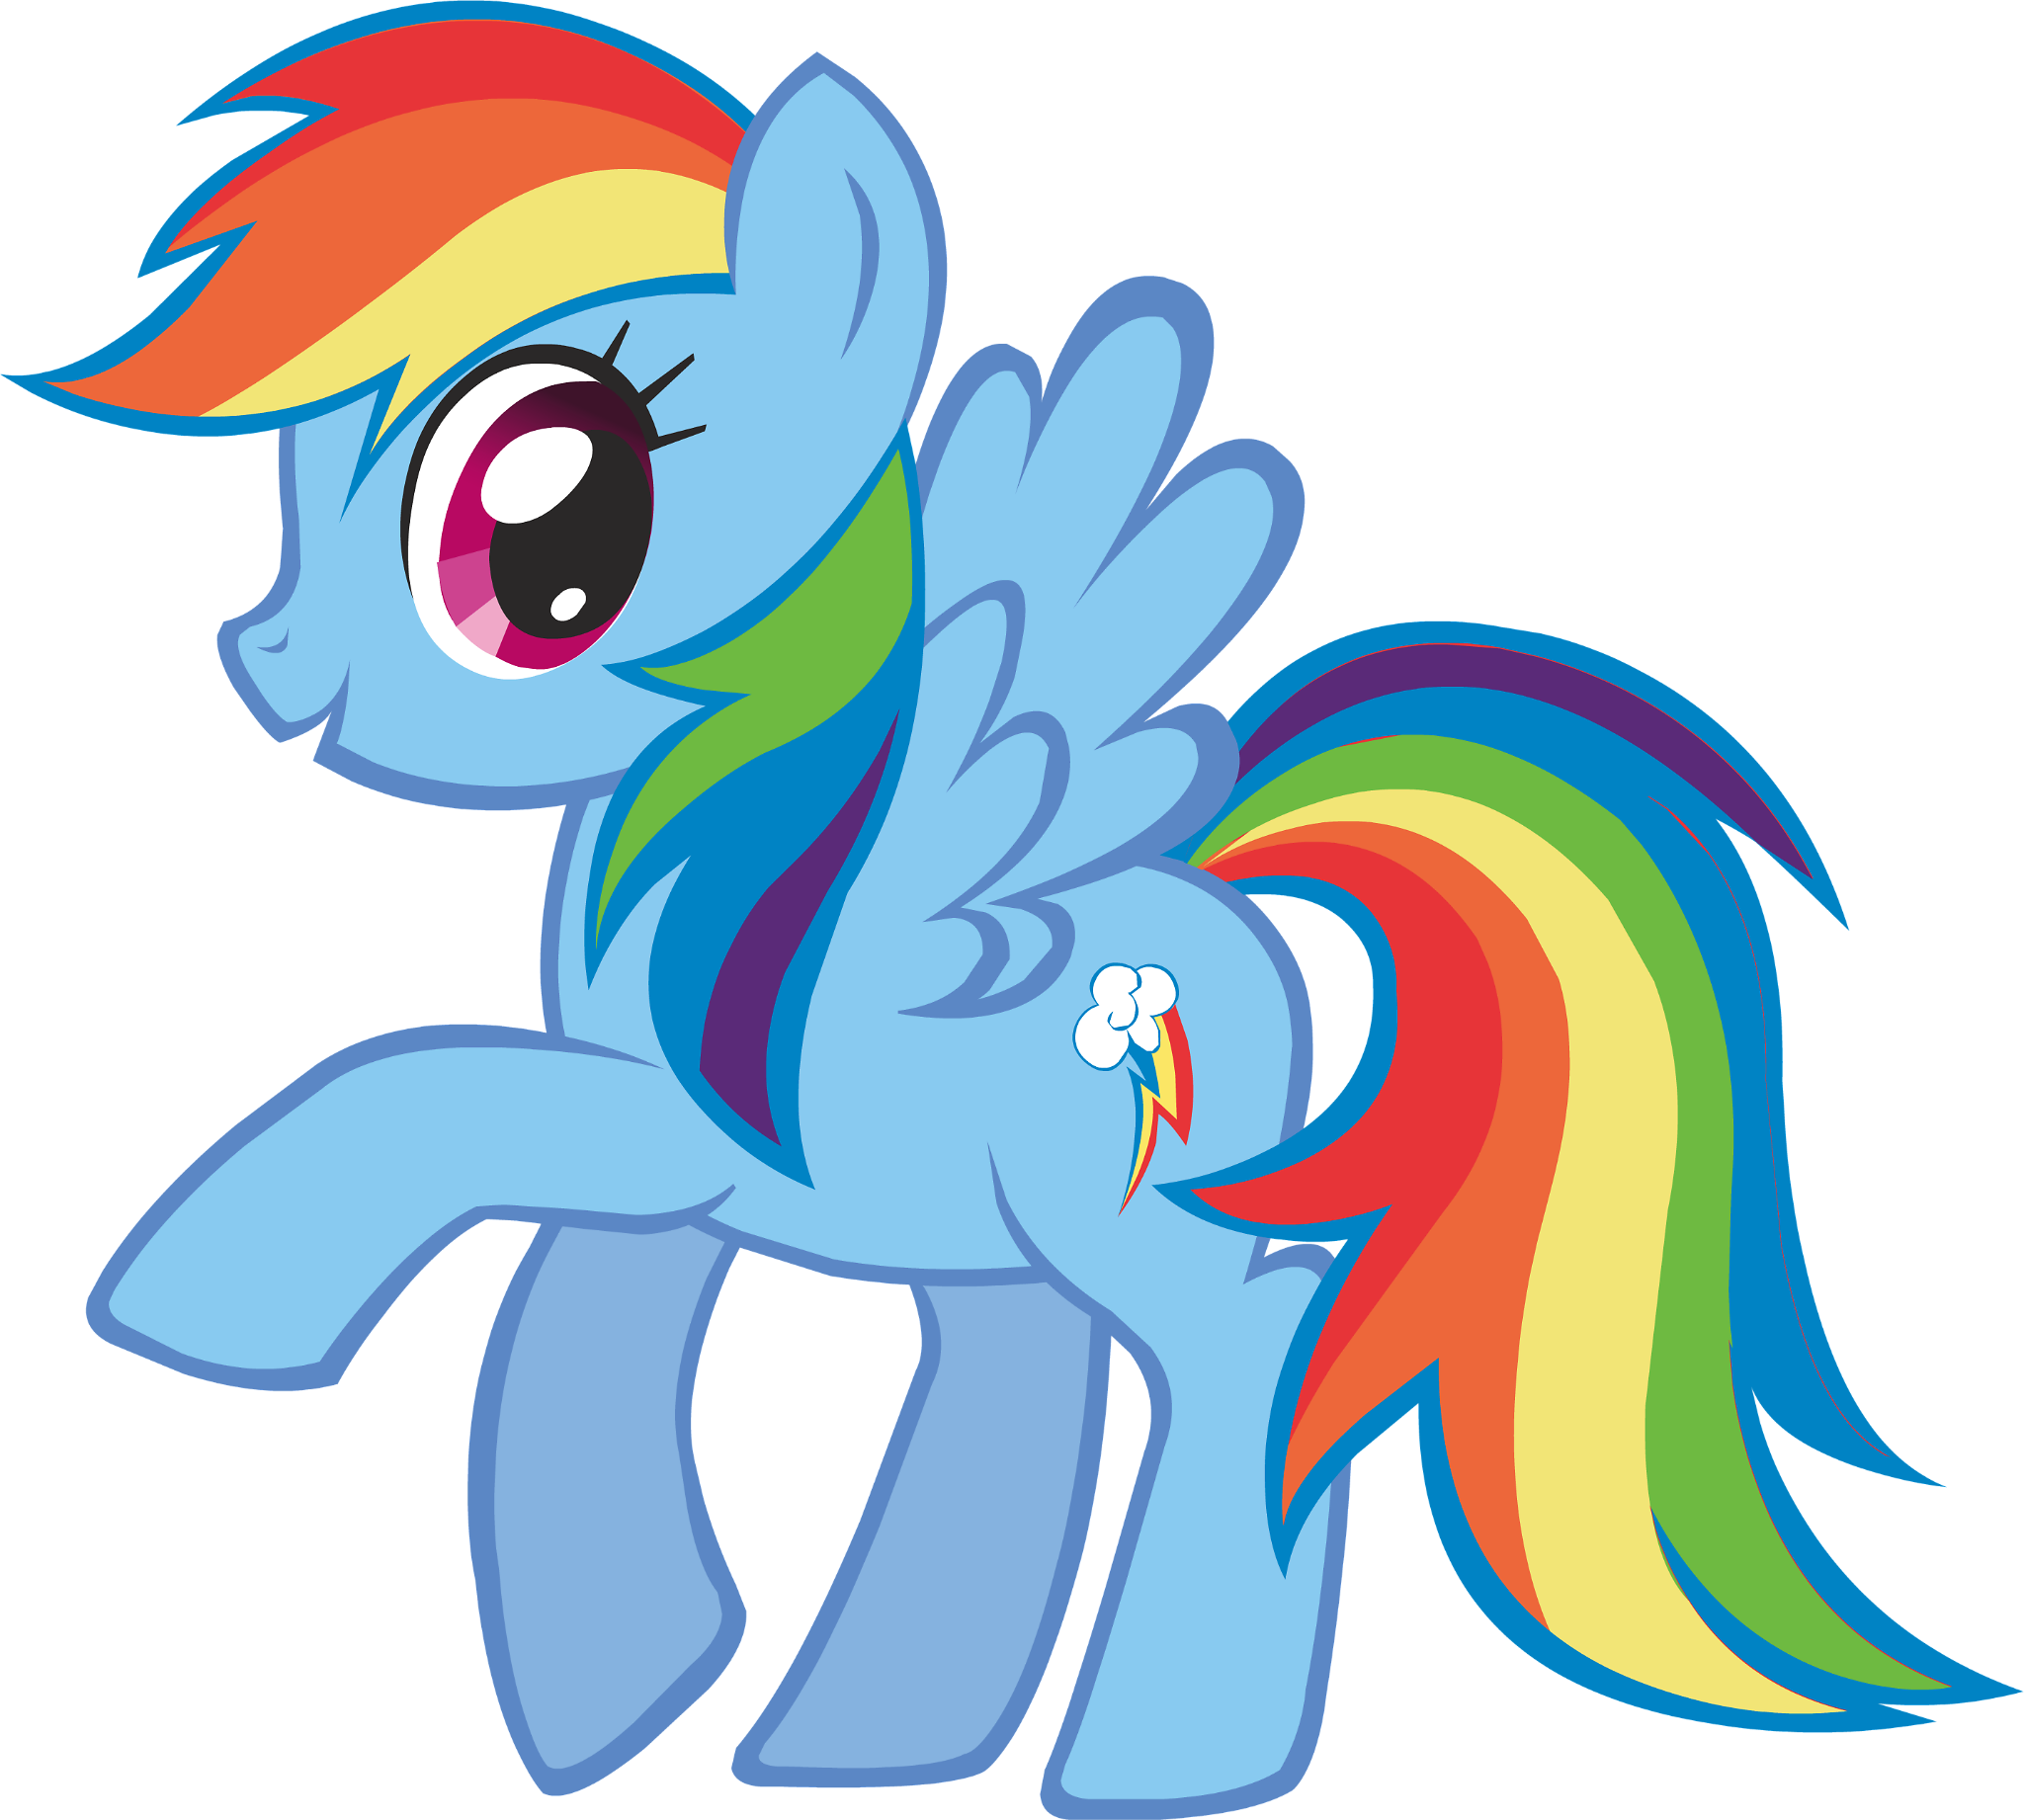 What is Rainbow dash's element of harmony?